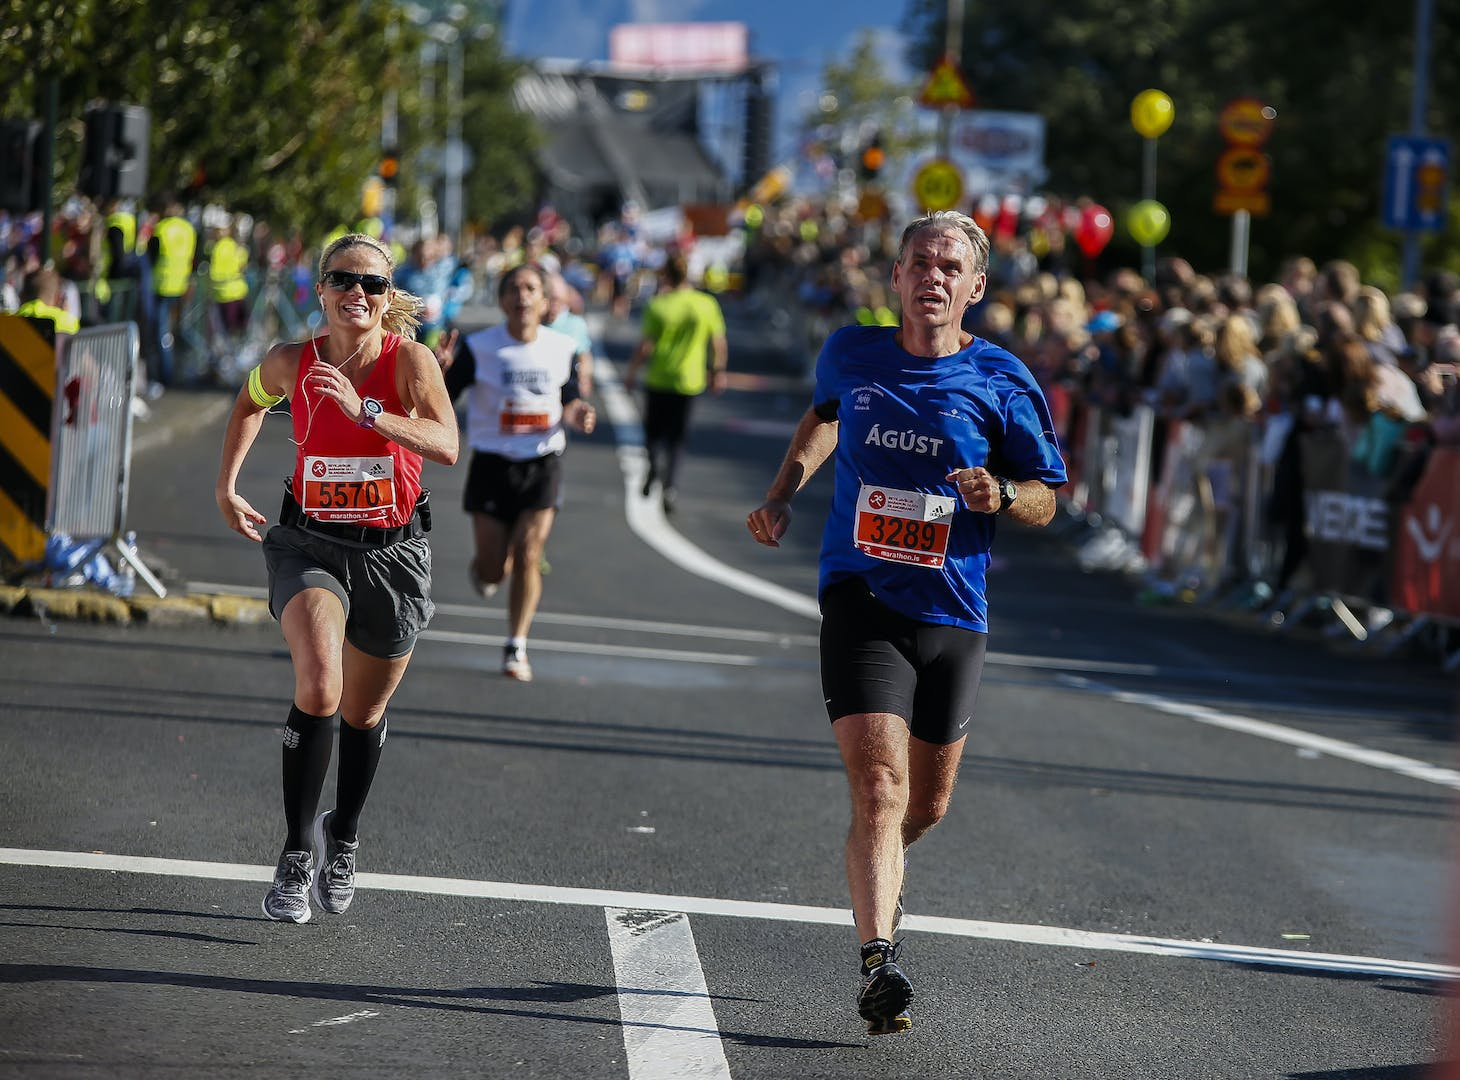 Participants finishing the race in street Lækjargata